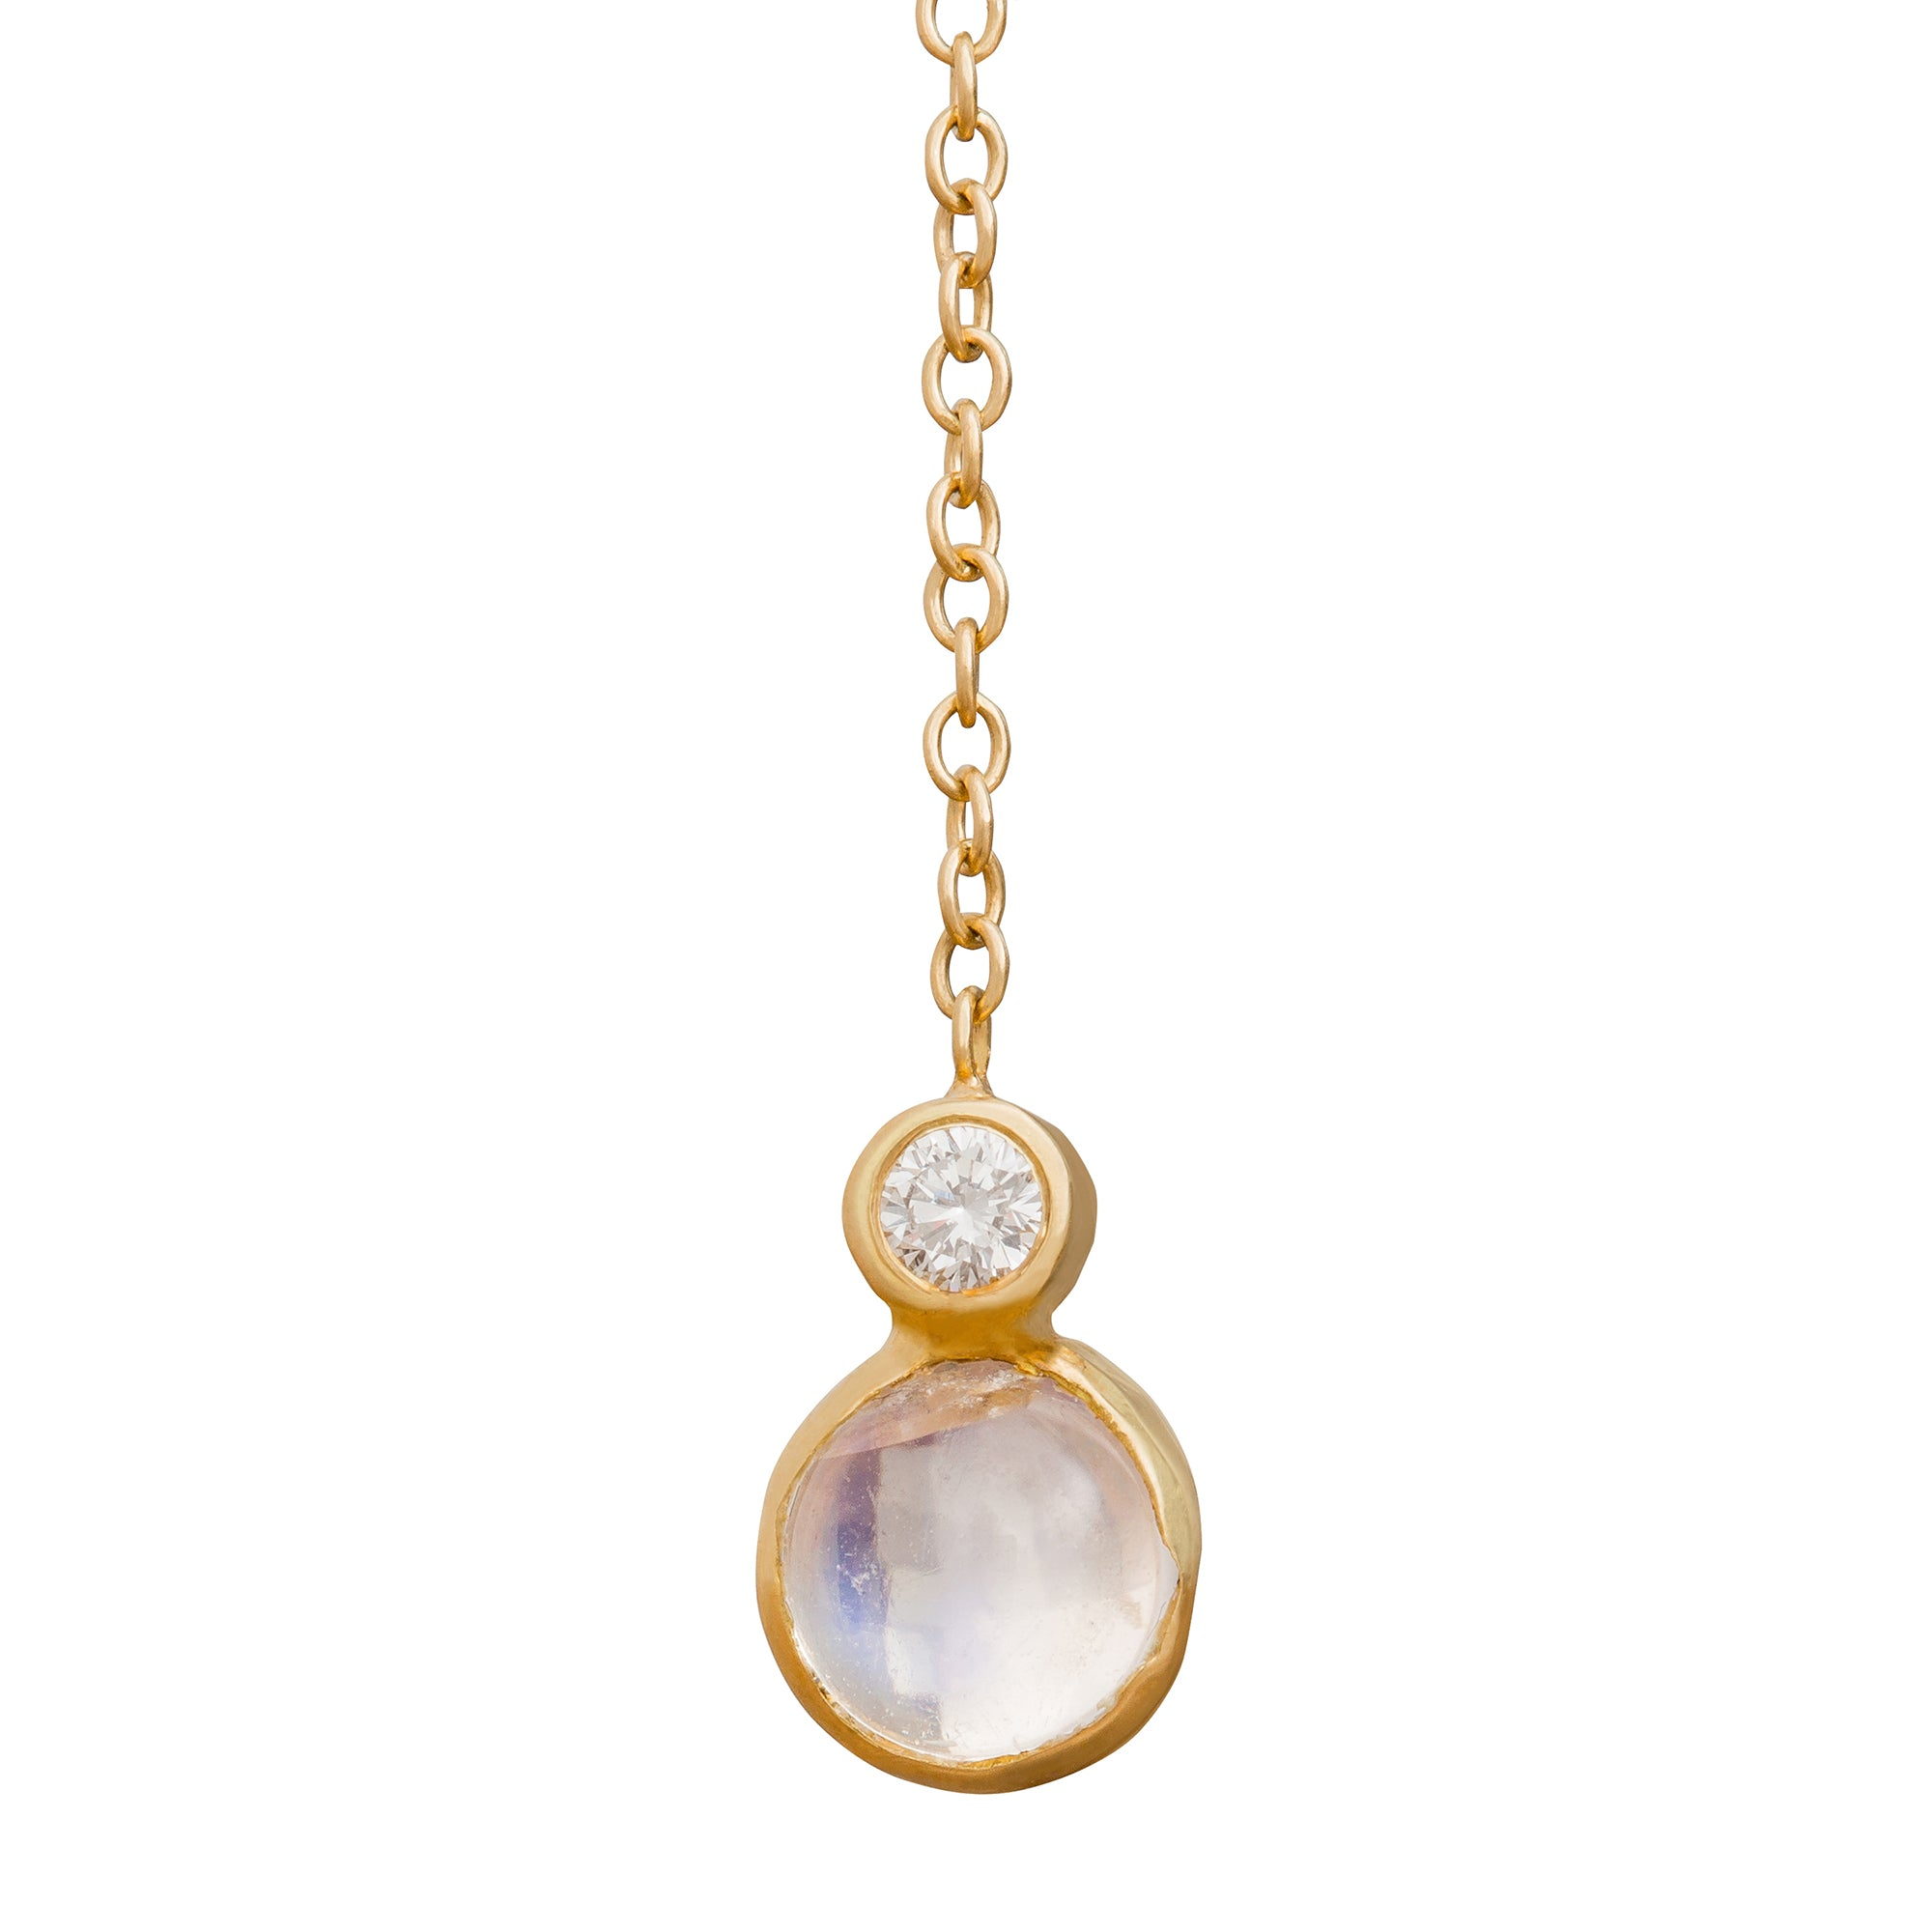 Moonstone Lariat Necklace - Katey Walker - Necklaces | Broken English Jewelry